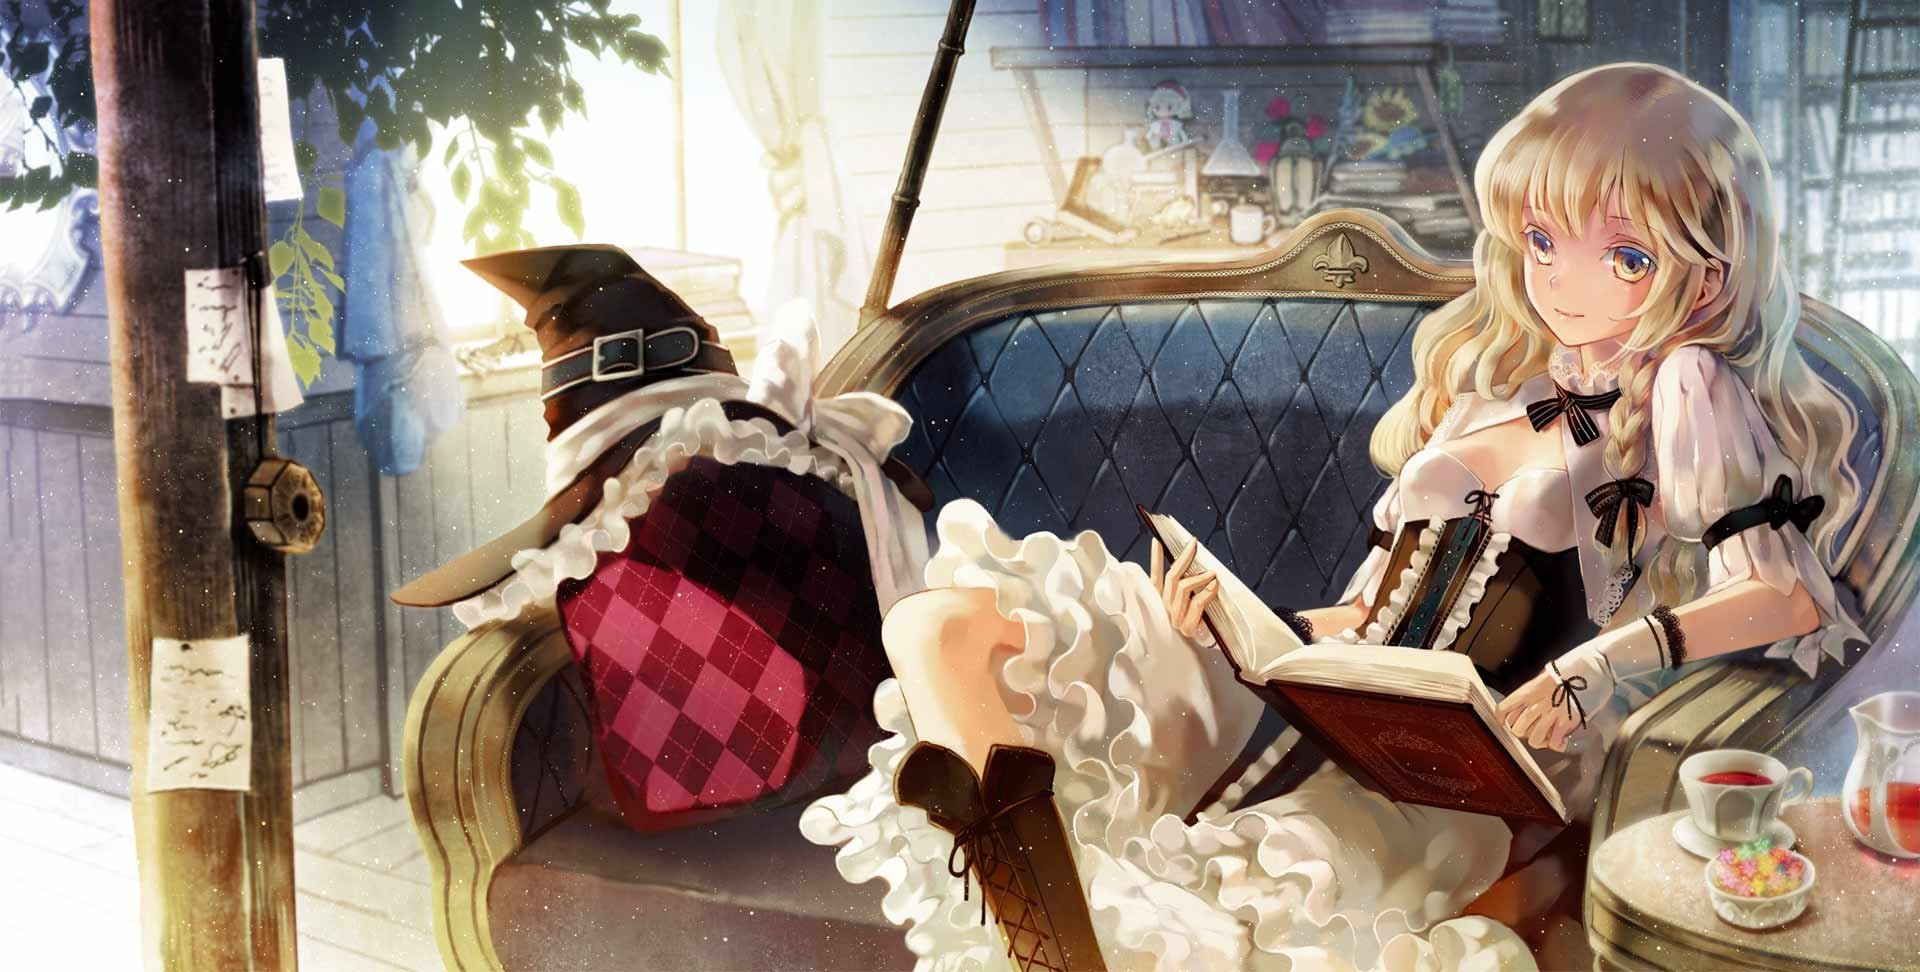 Cute Small Sad Girl Wallpaper Boots Blondes Video Games Touhou Couch Dress Indoors Tea